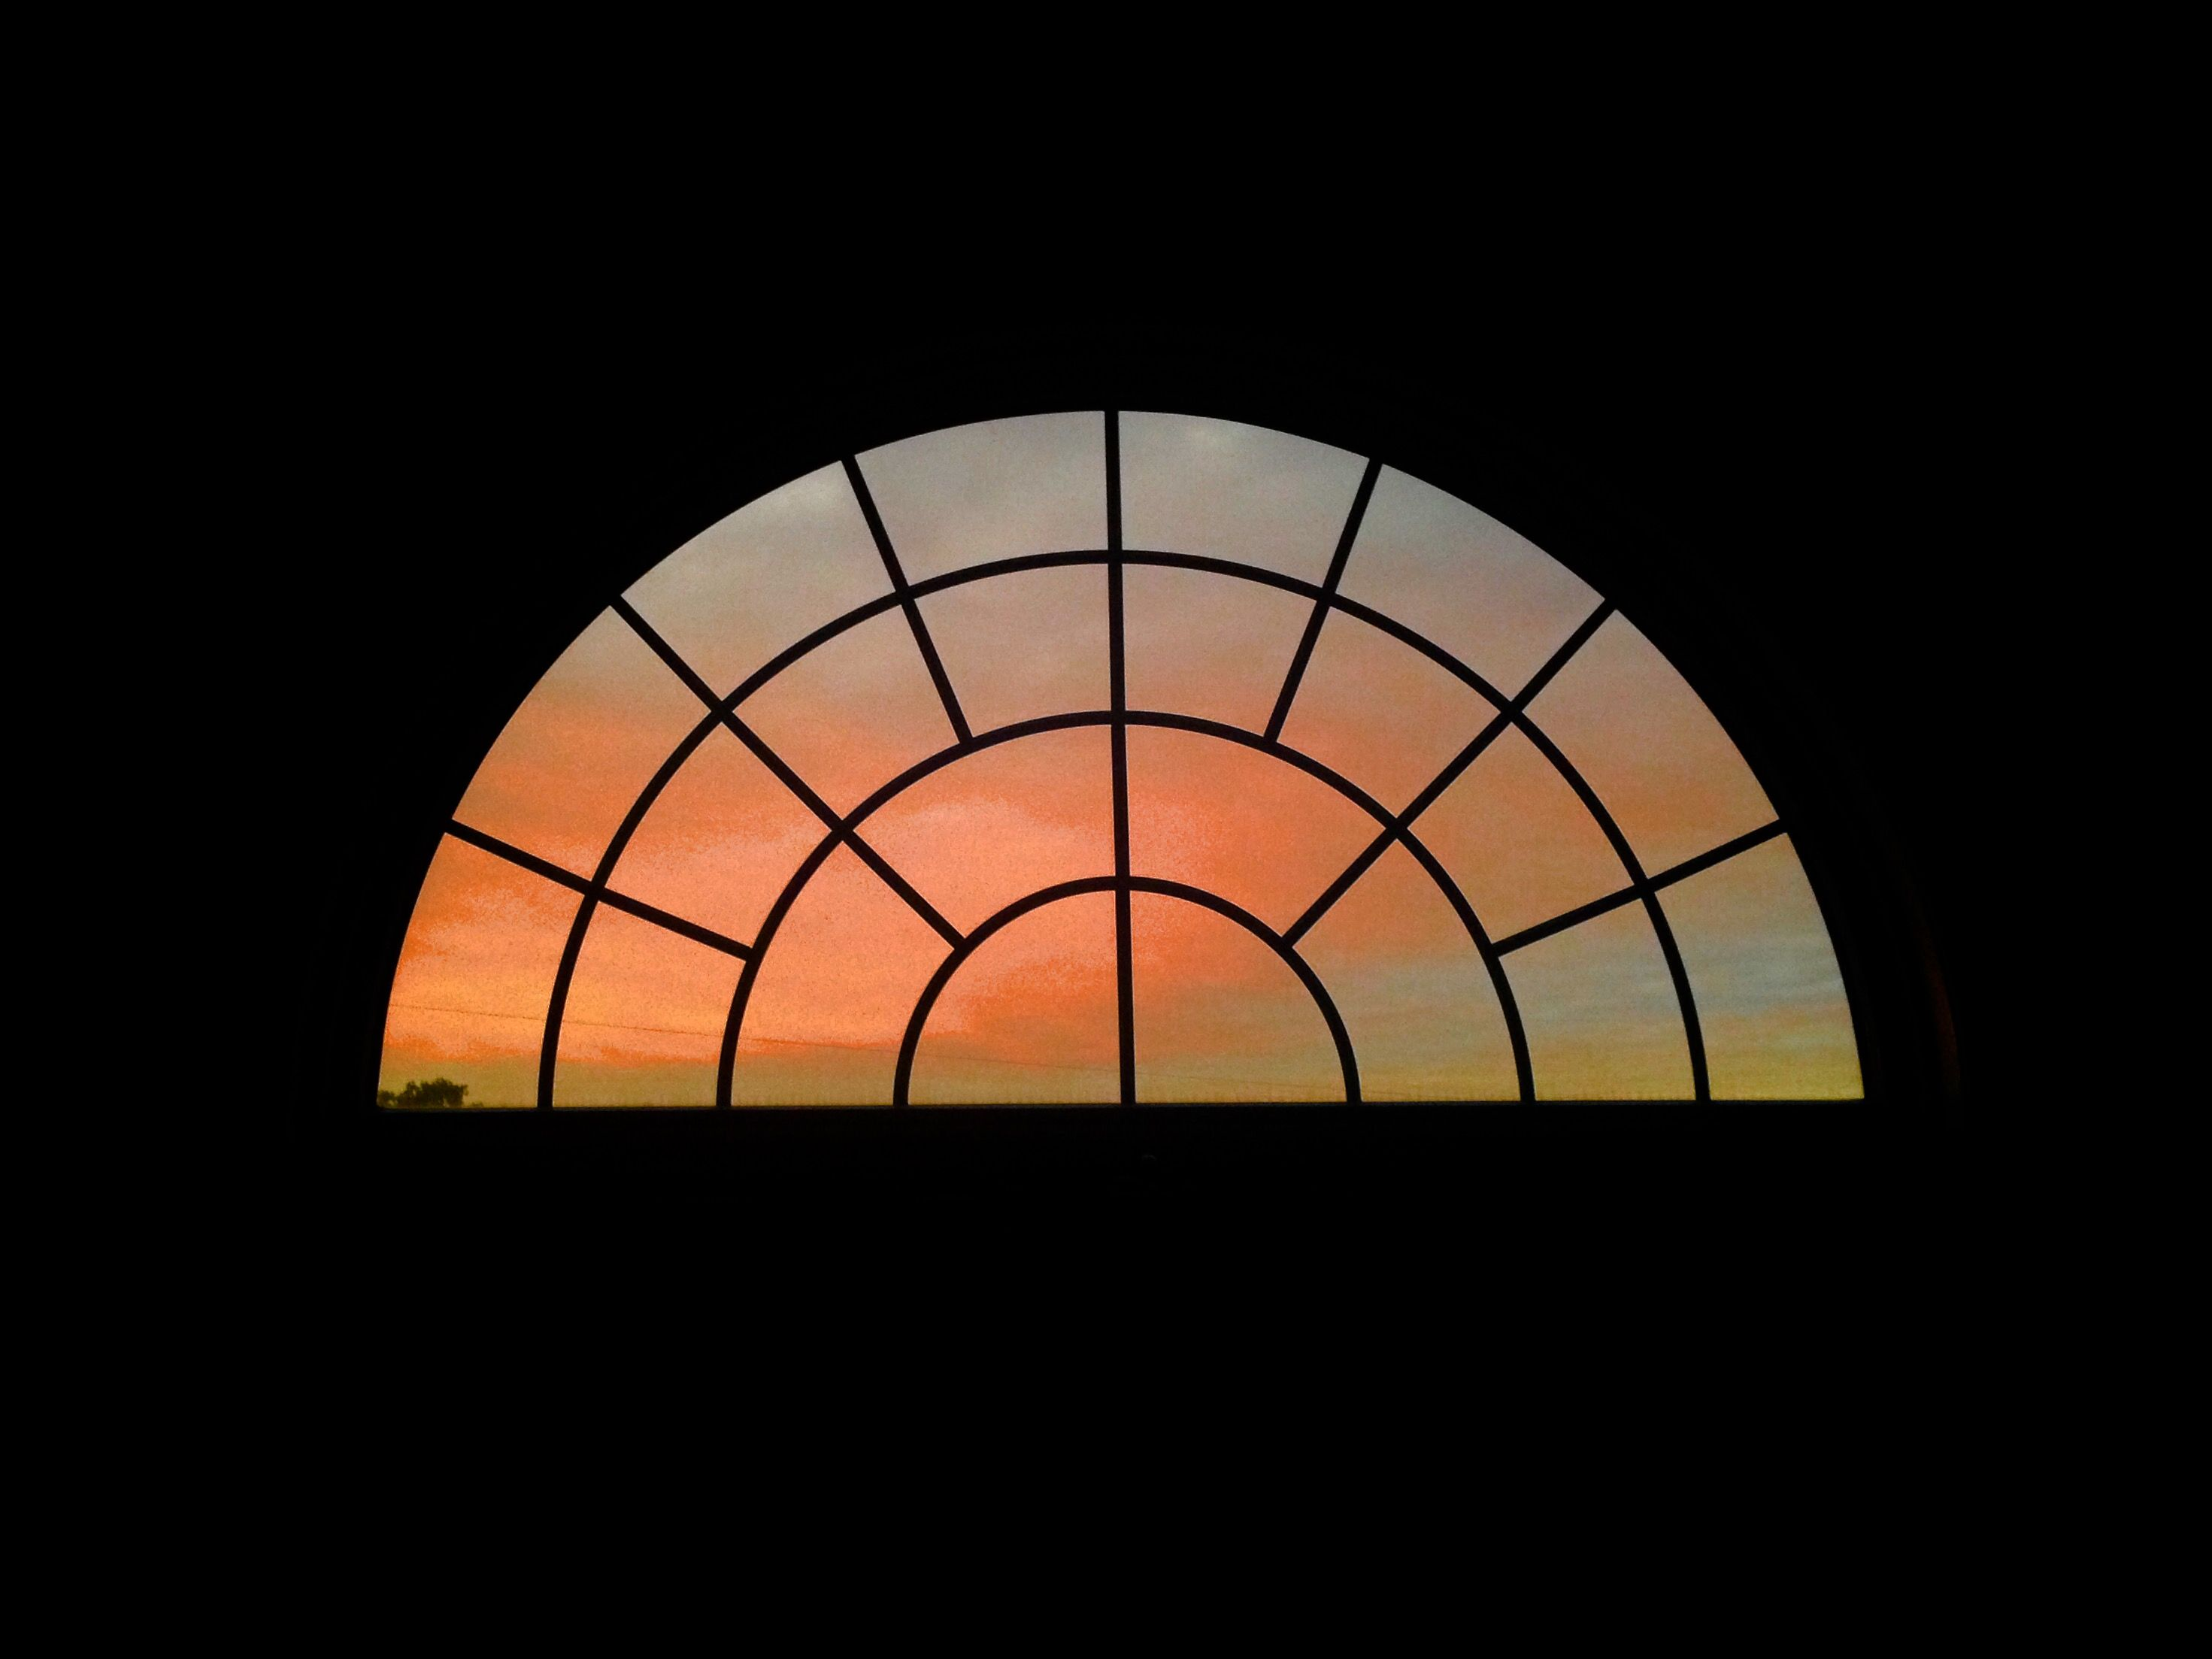 Sunset through the half moon window, in my master bedroom.